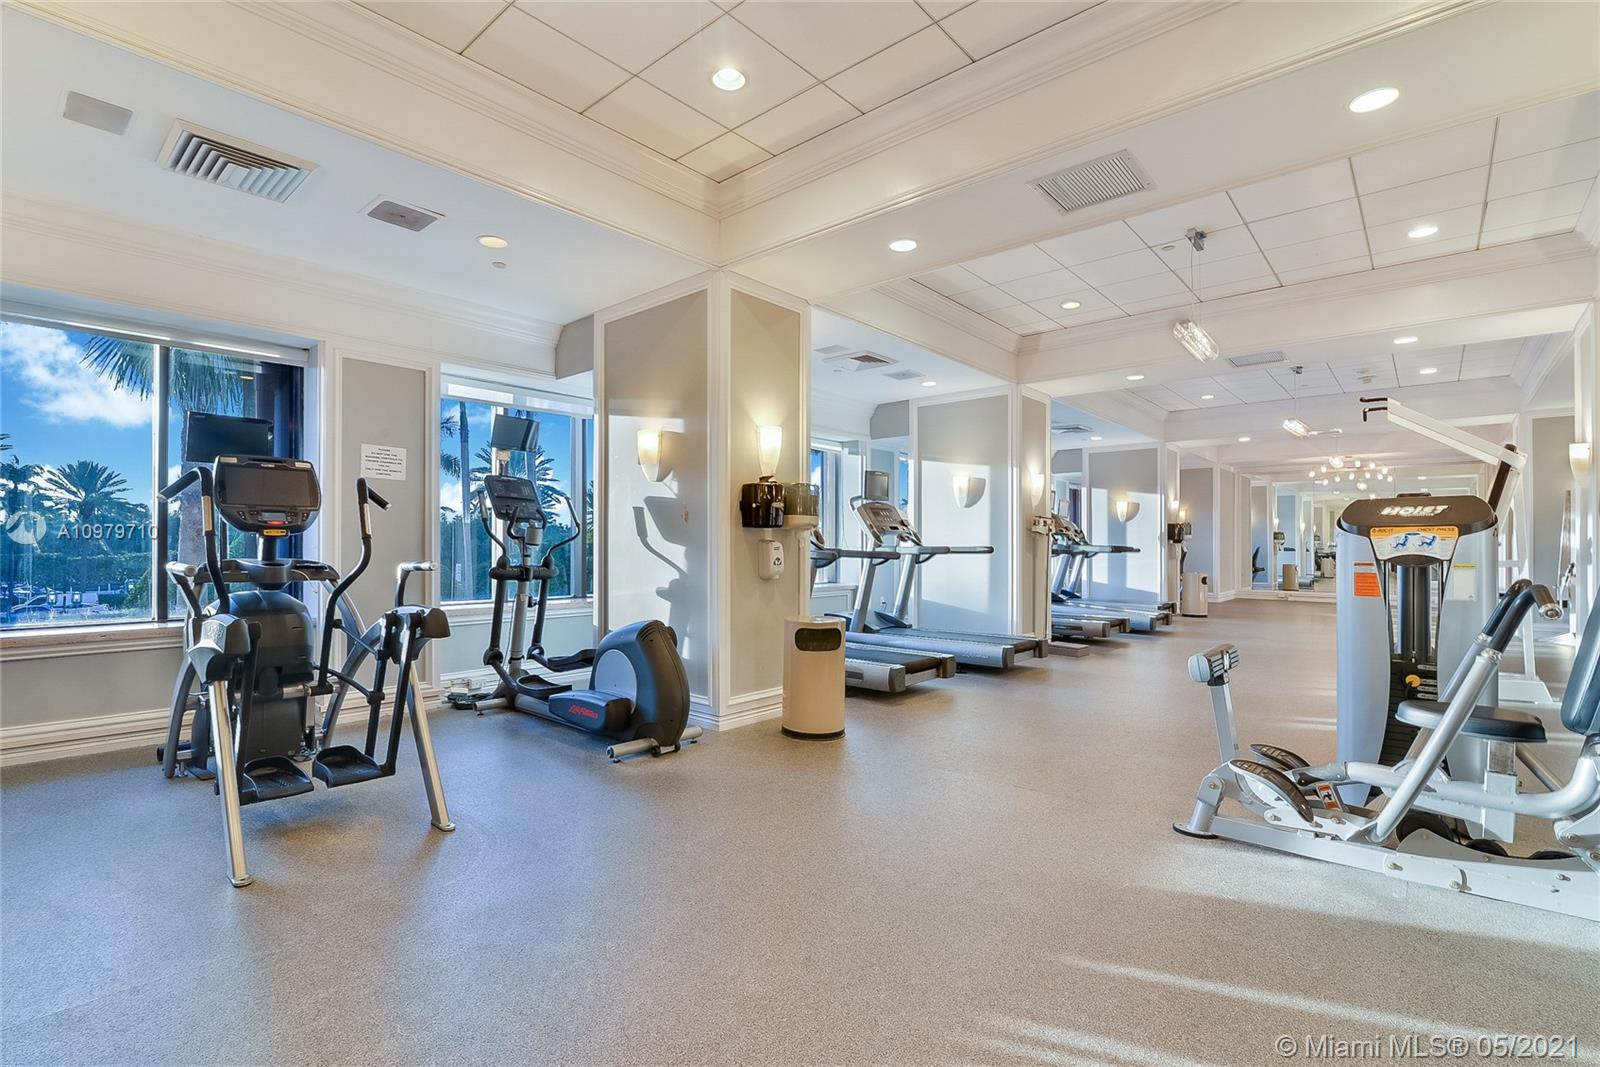 Photo of 9801 Collins Ave #10R, Bal Harbour, Florida, 33154 - Balmoral Bar, party room